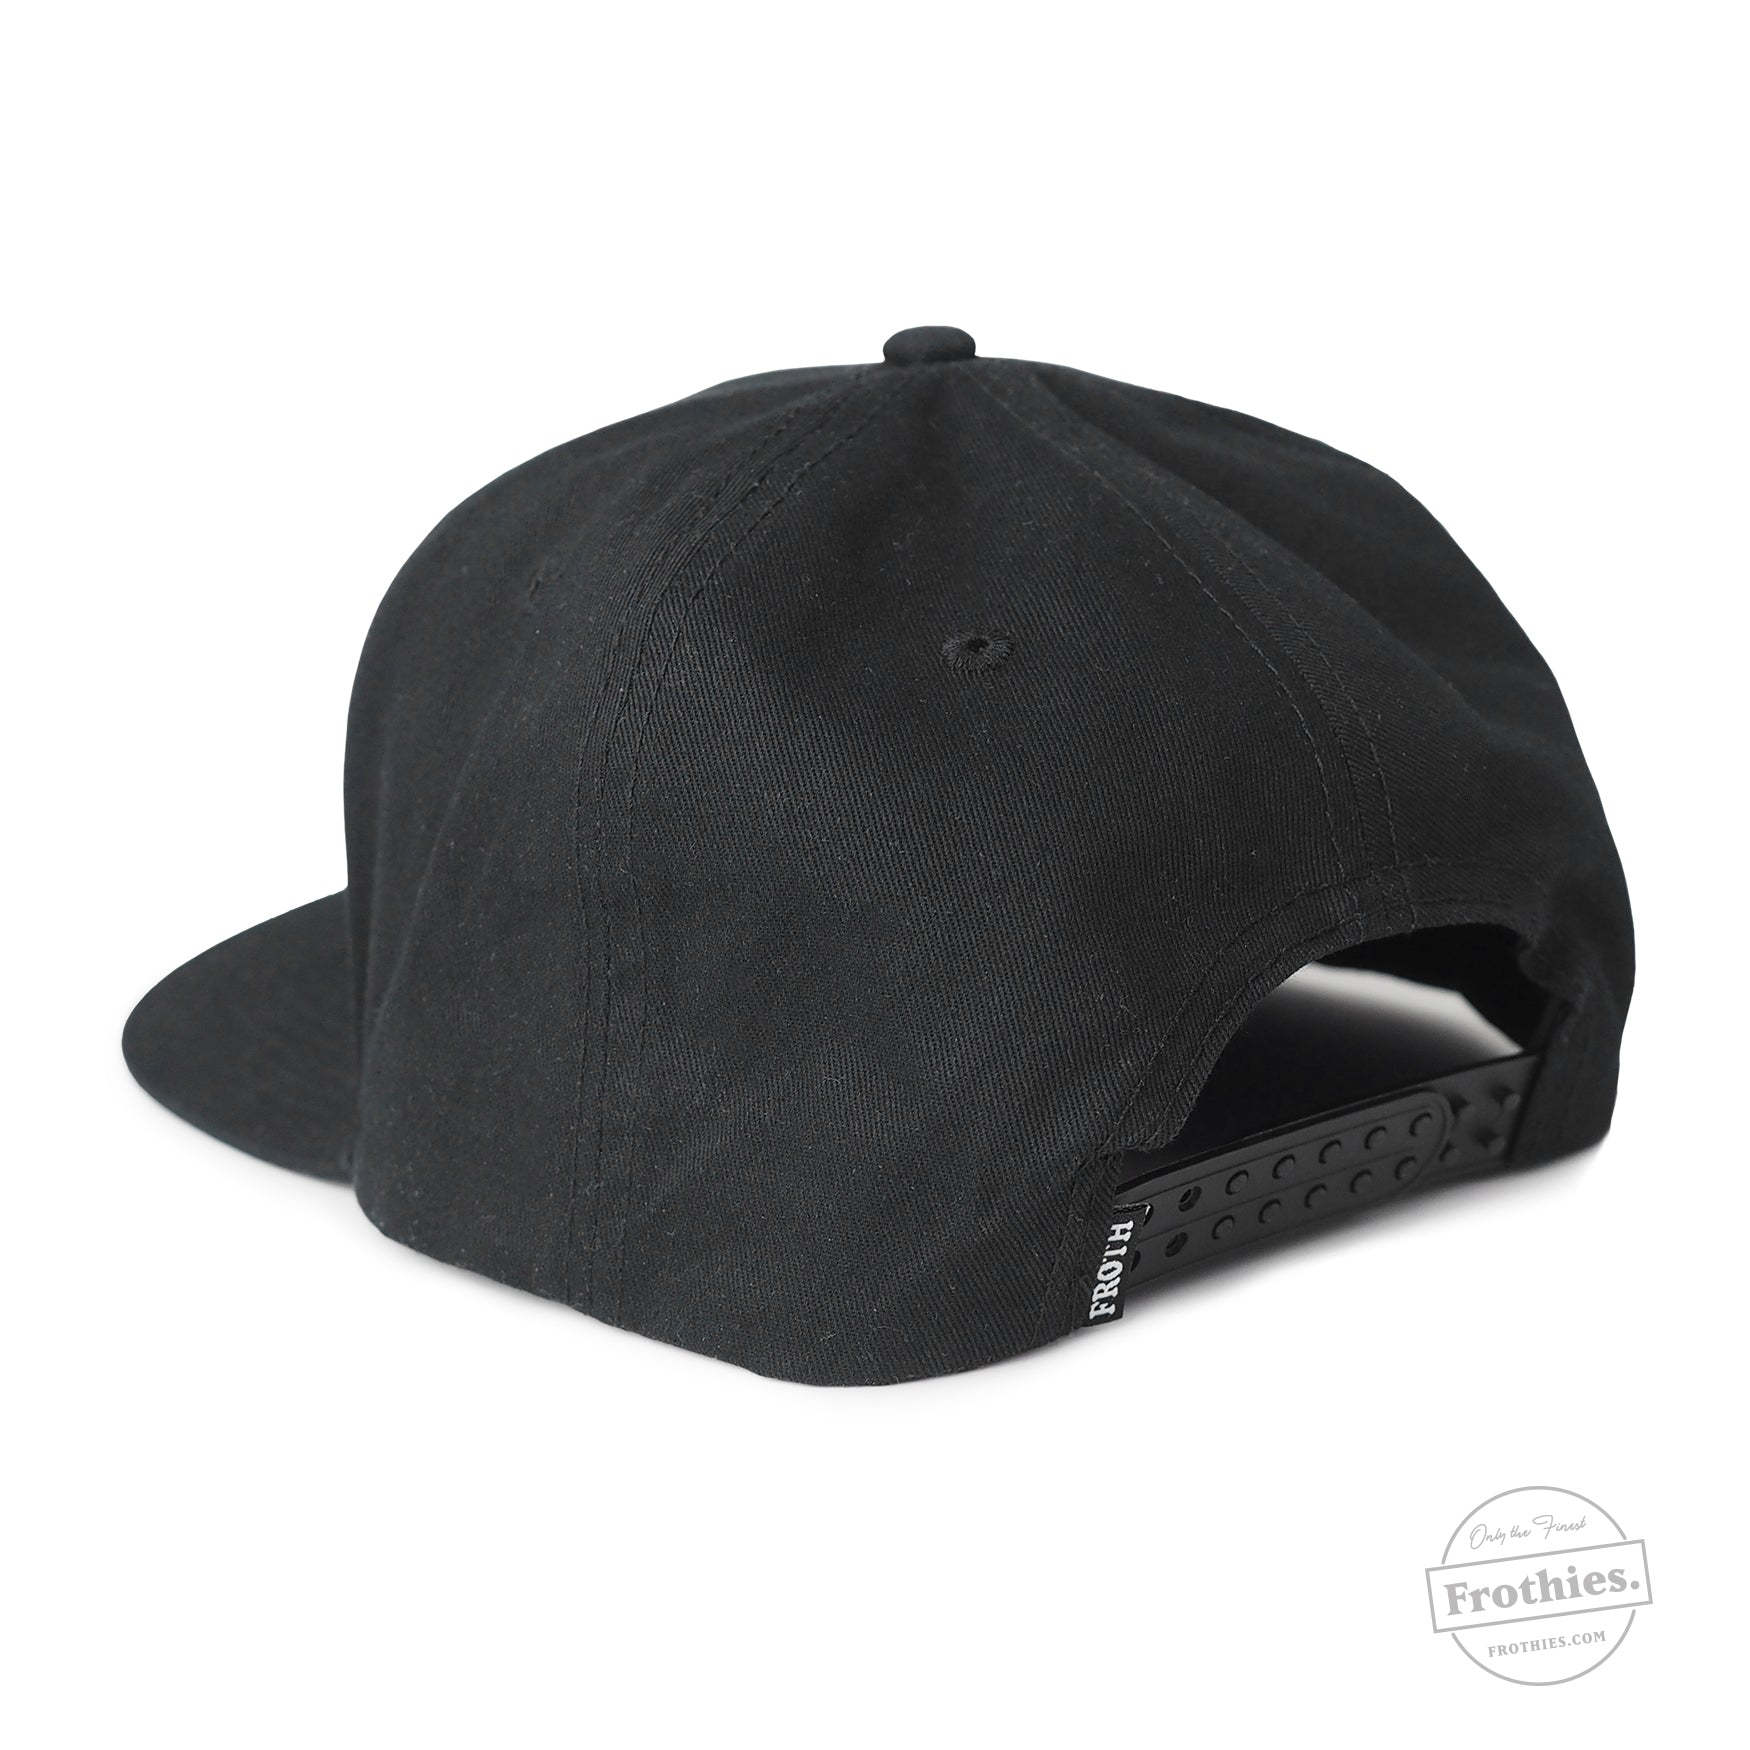 Sloshed Puppies - Flat Peak Snapback